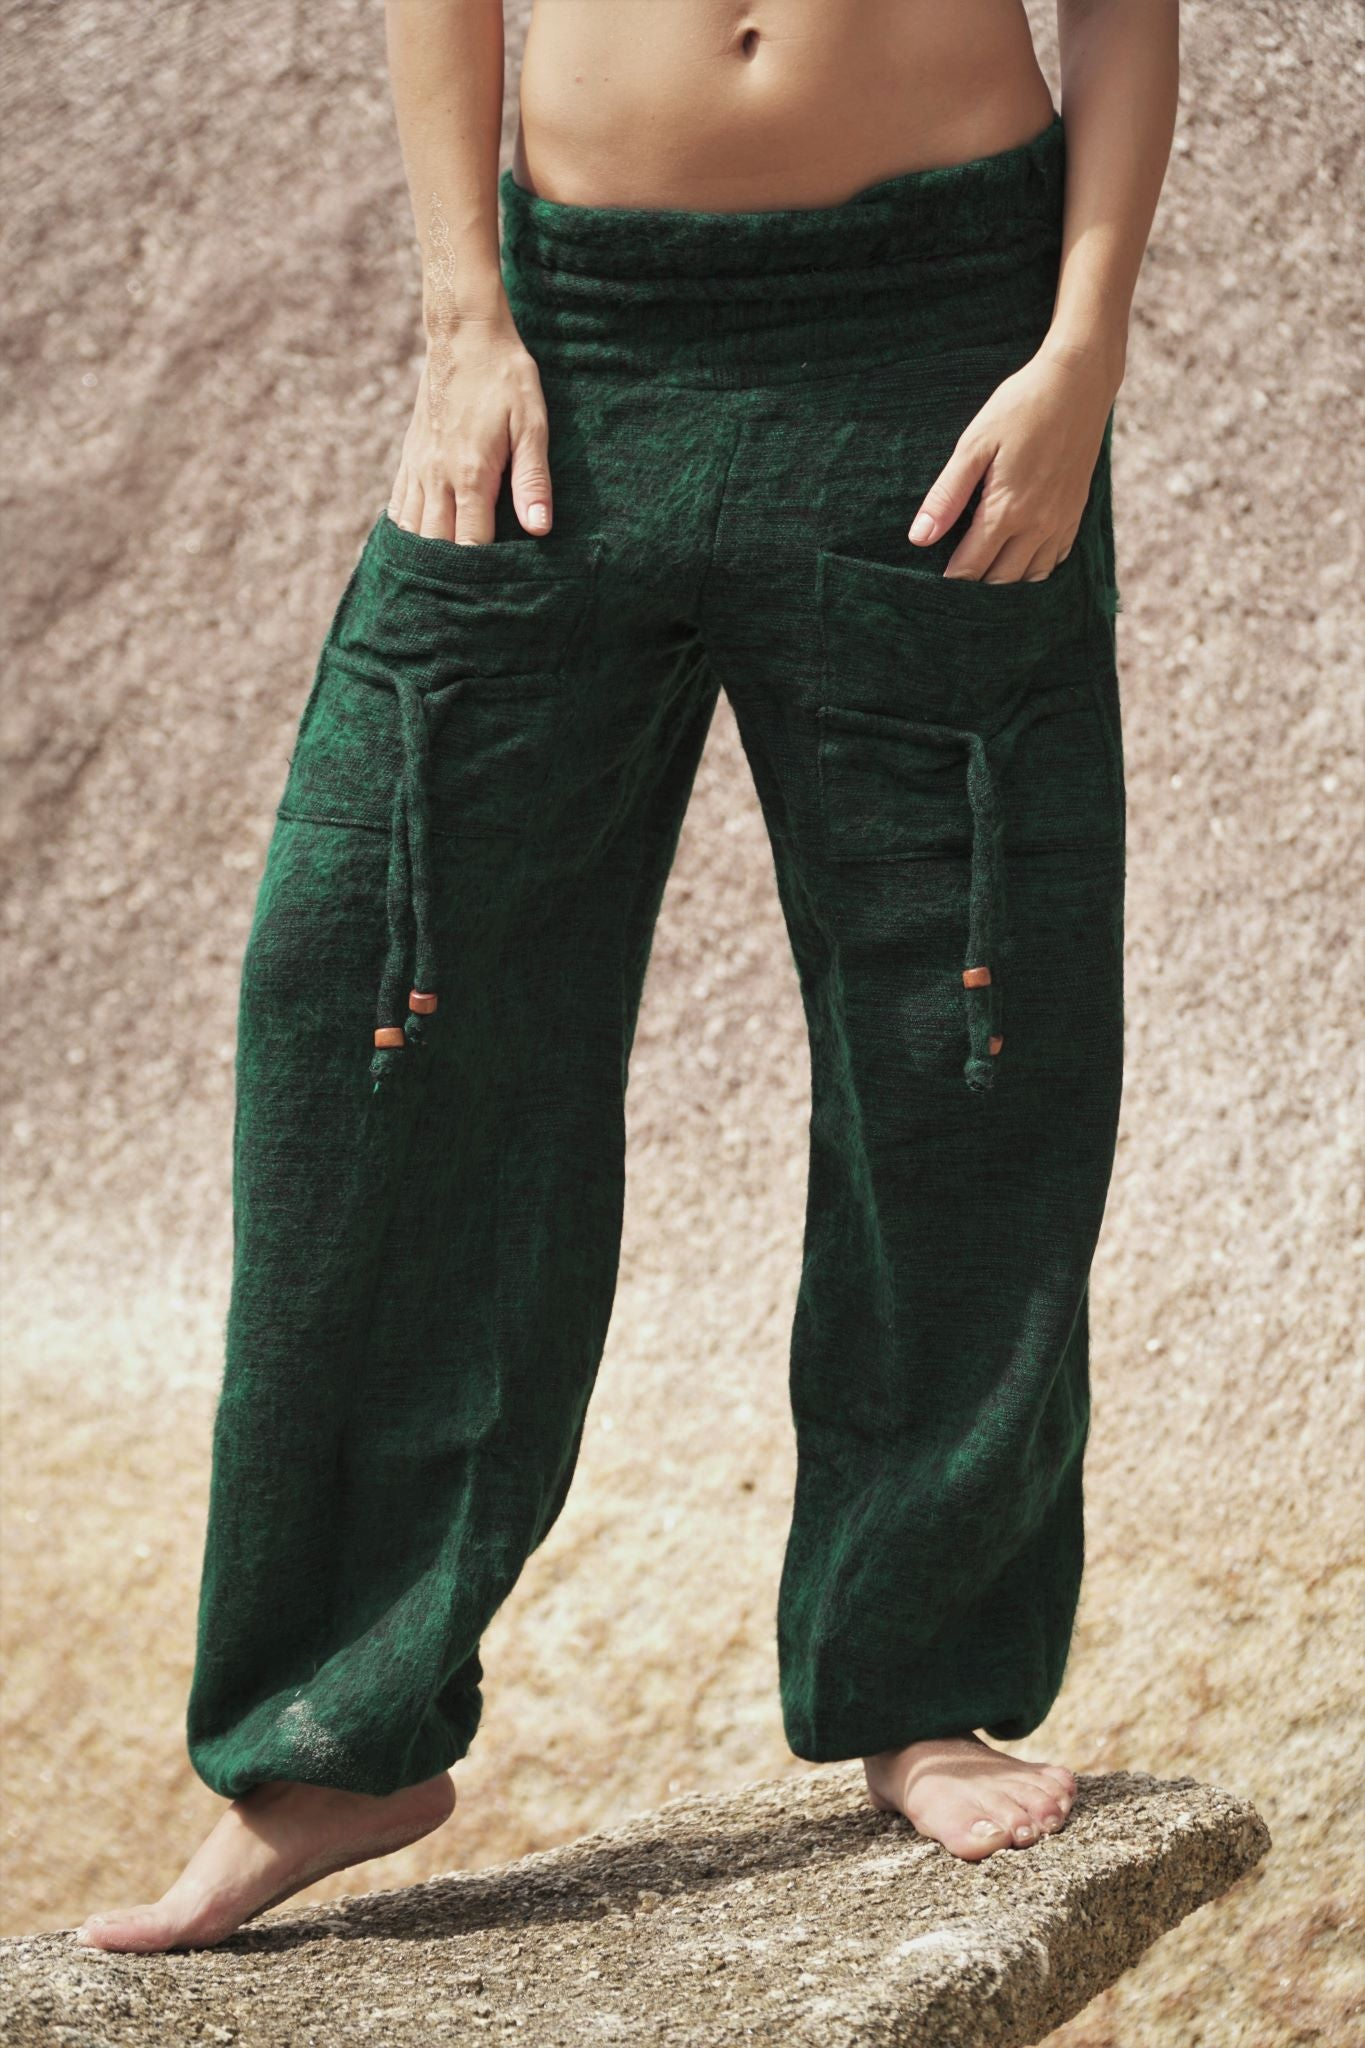 Warm High Crotch Harem Pants - Cashmilon - Green